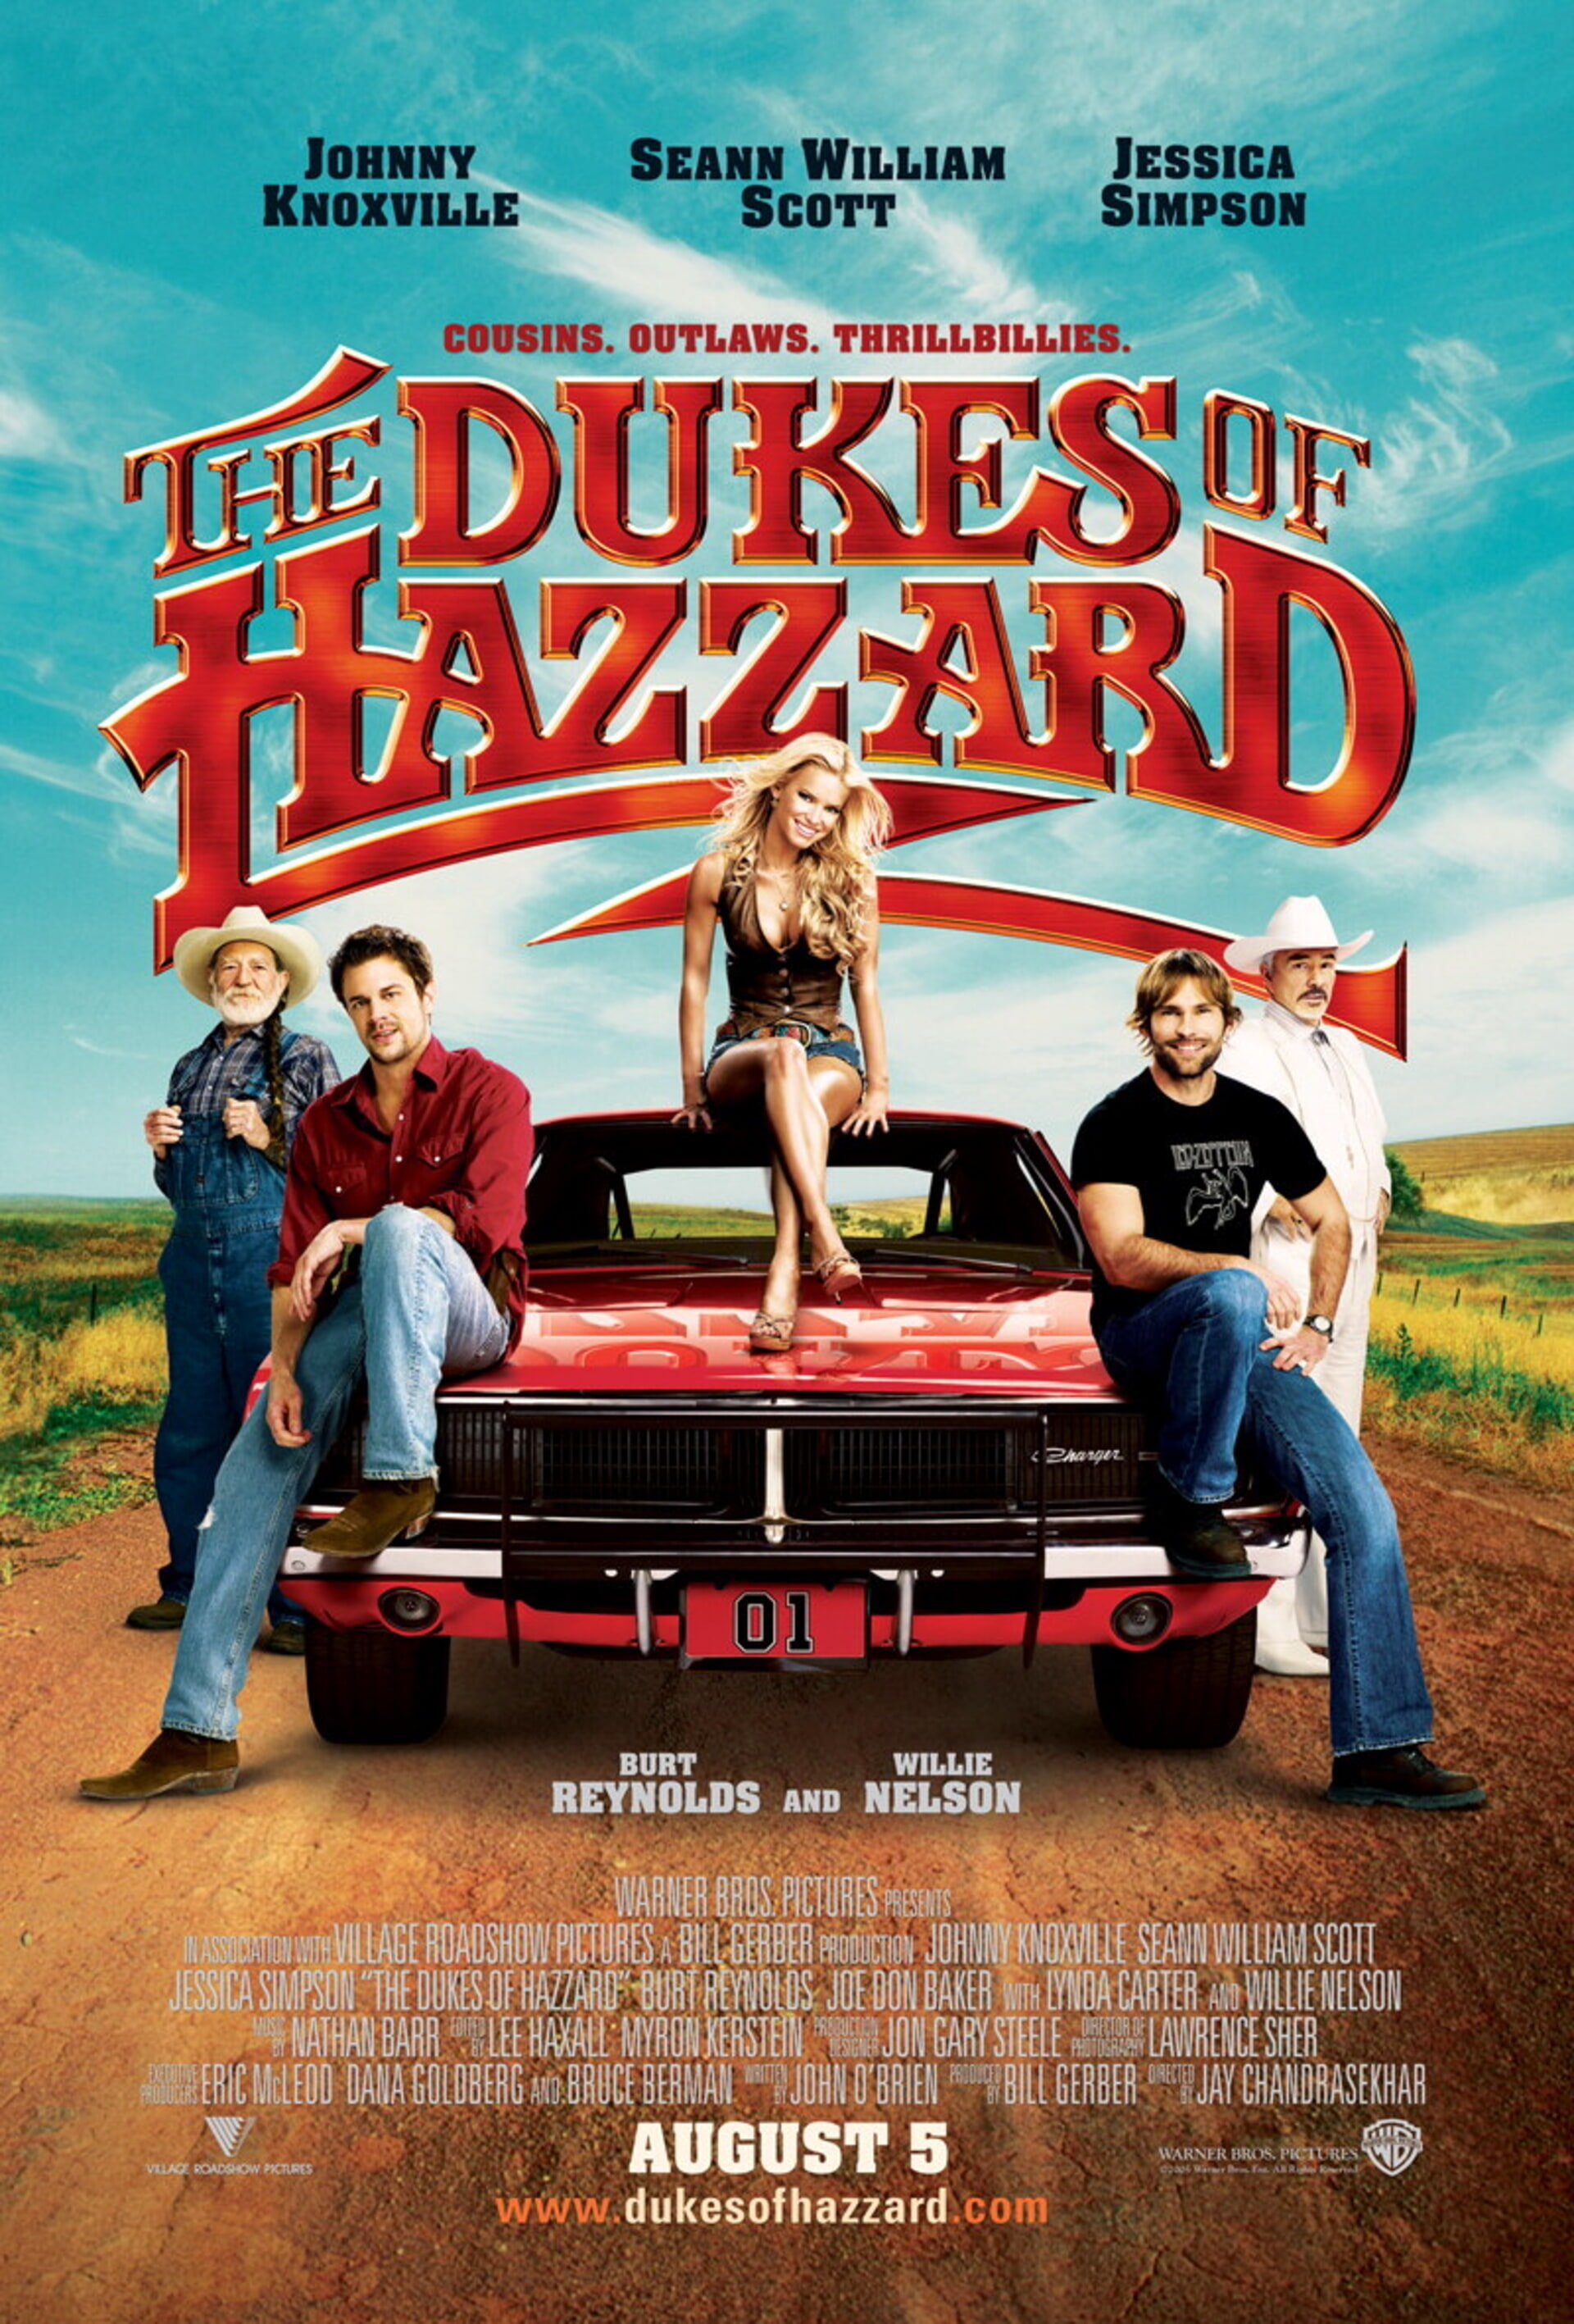 The Dukes of Hazzard - Poster 1